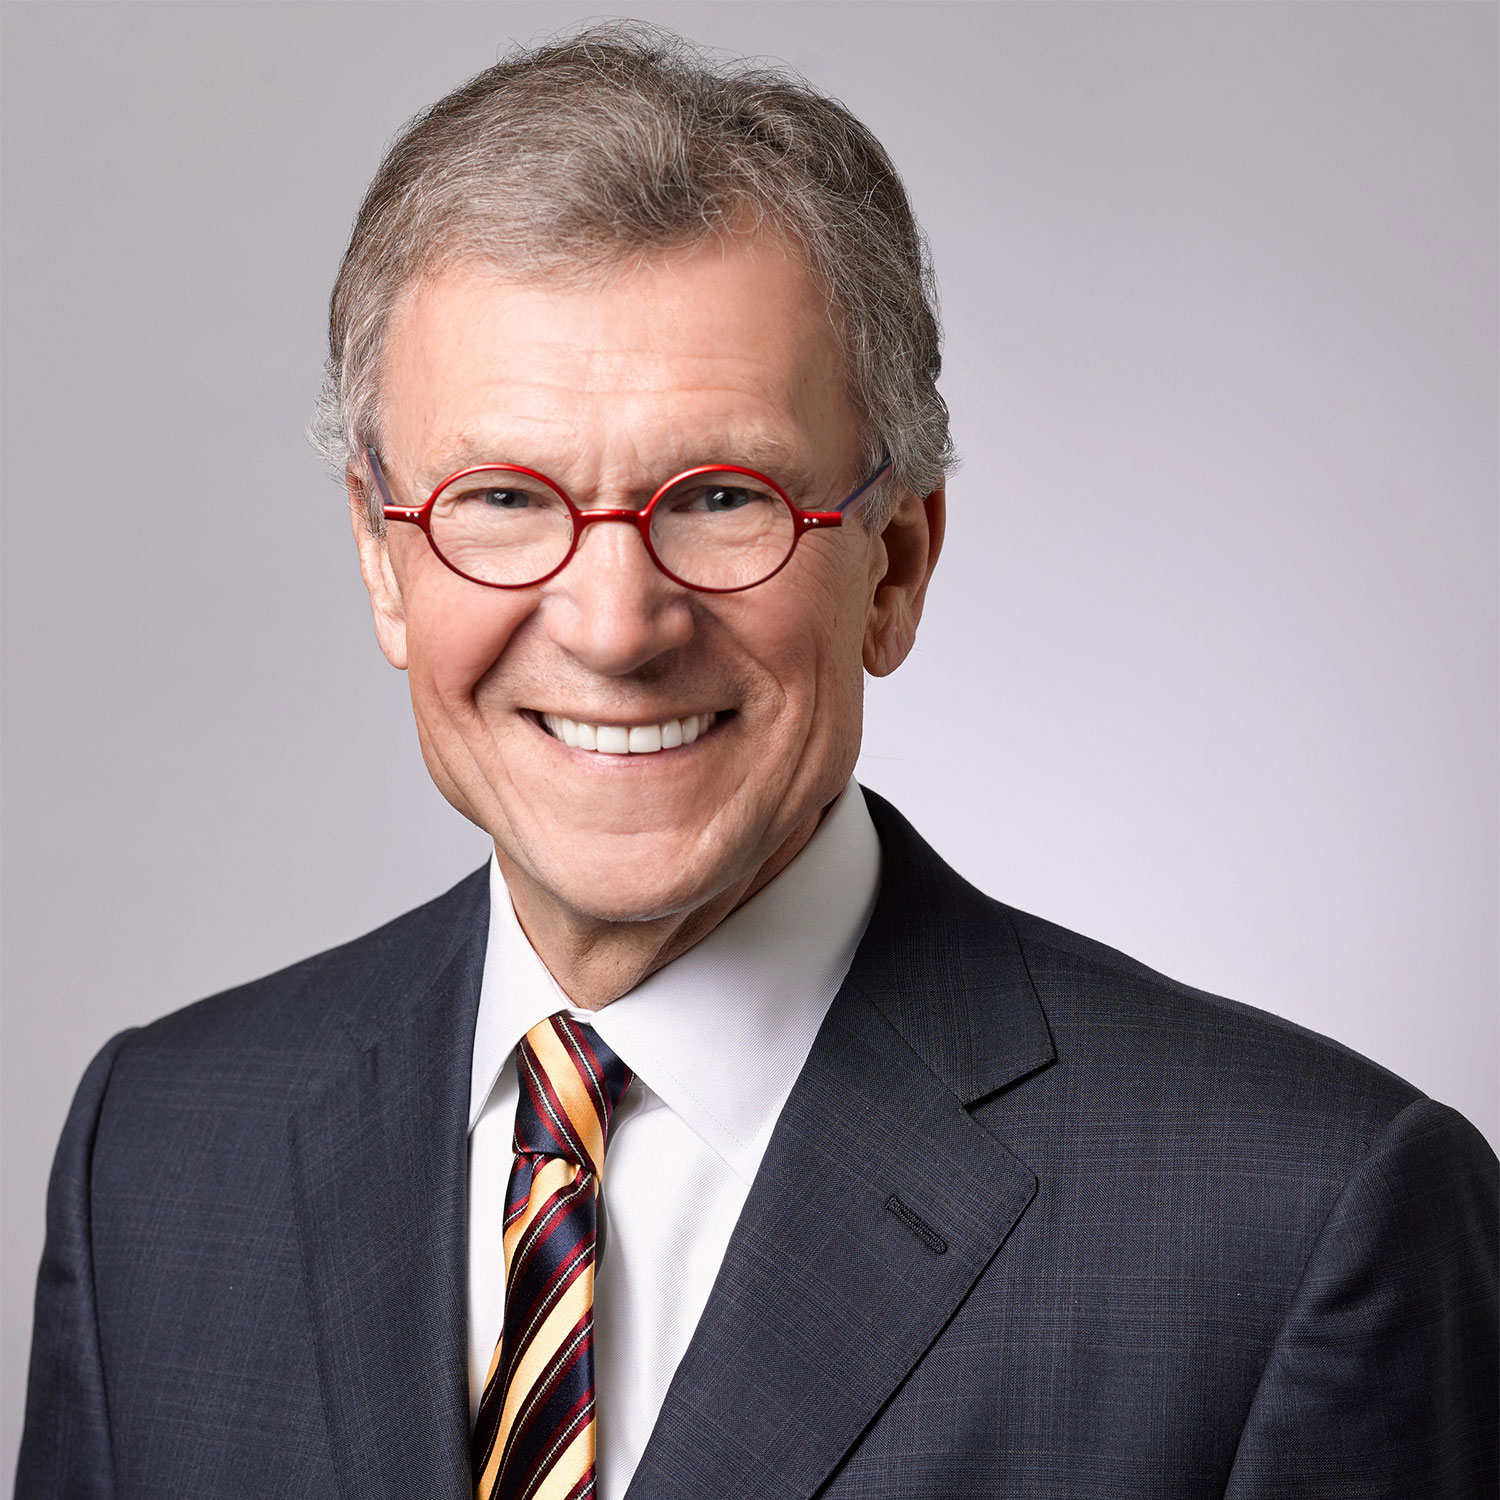 Senator Tom Daschle Headshot